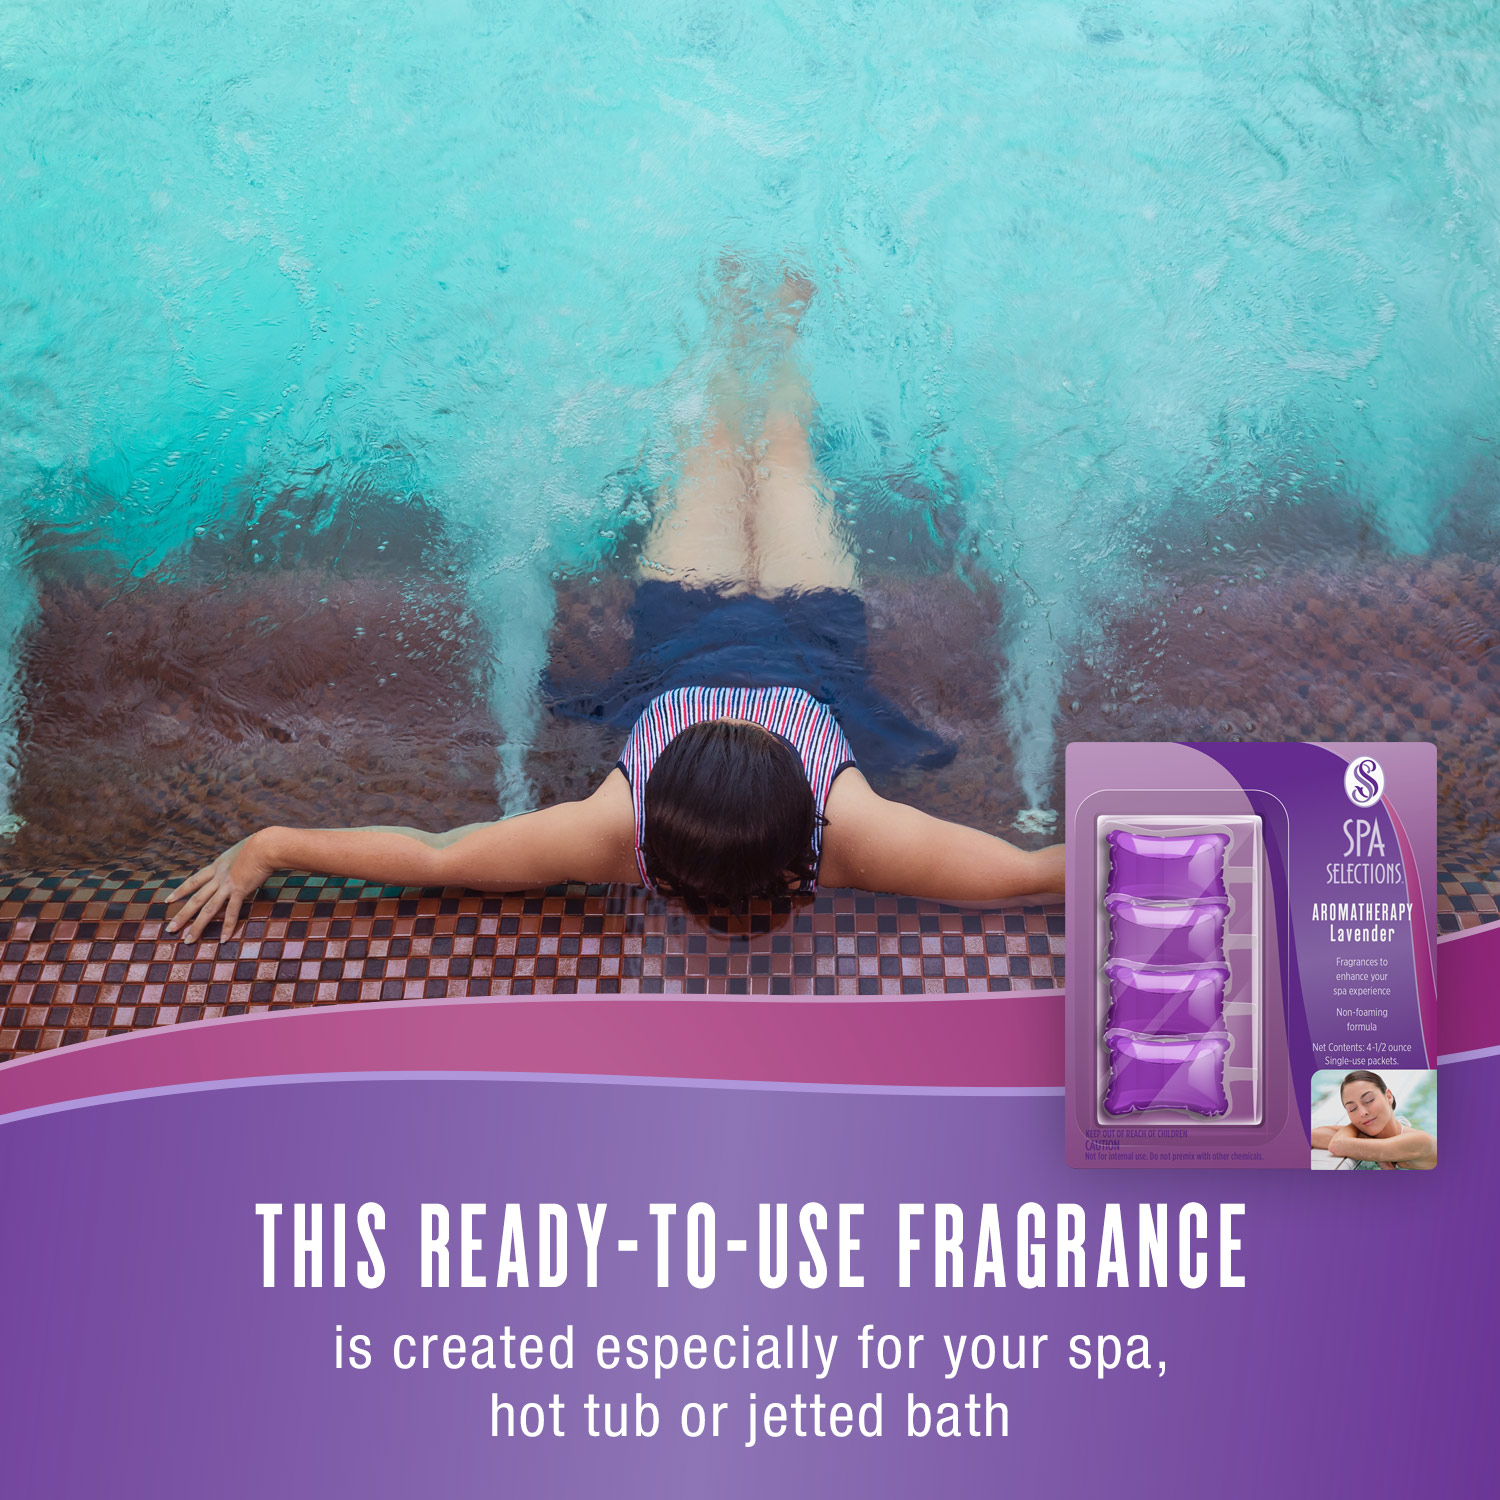 Woman enjoying large spa. Spa Selections ready-to-use fragrance is created especially for your spa, hot tub or jetted bath.